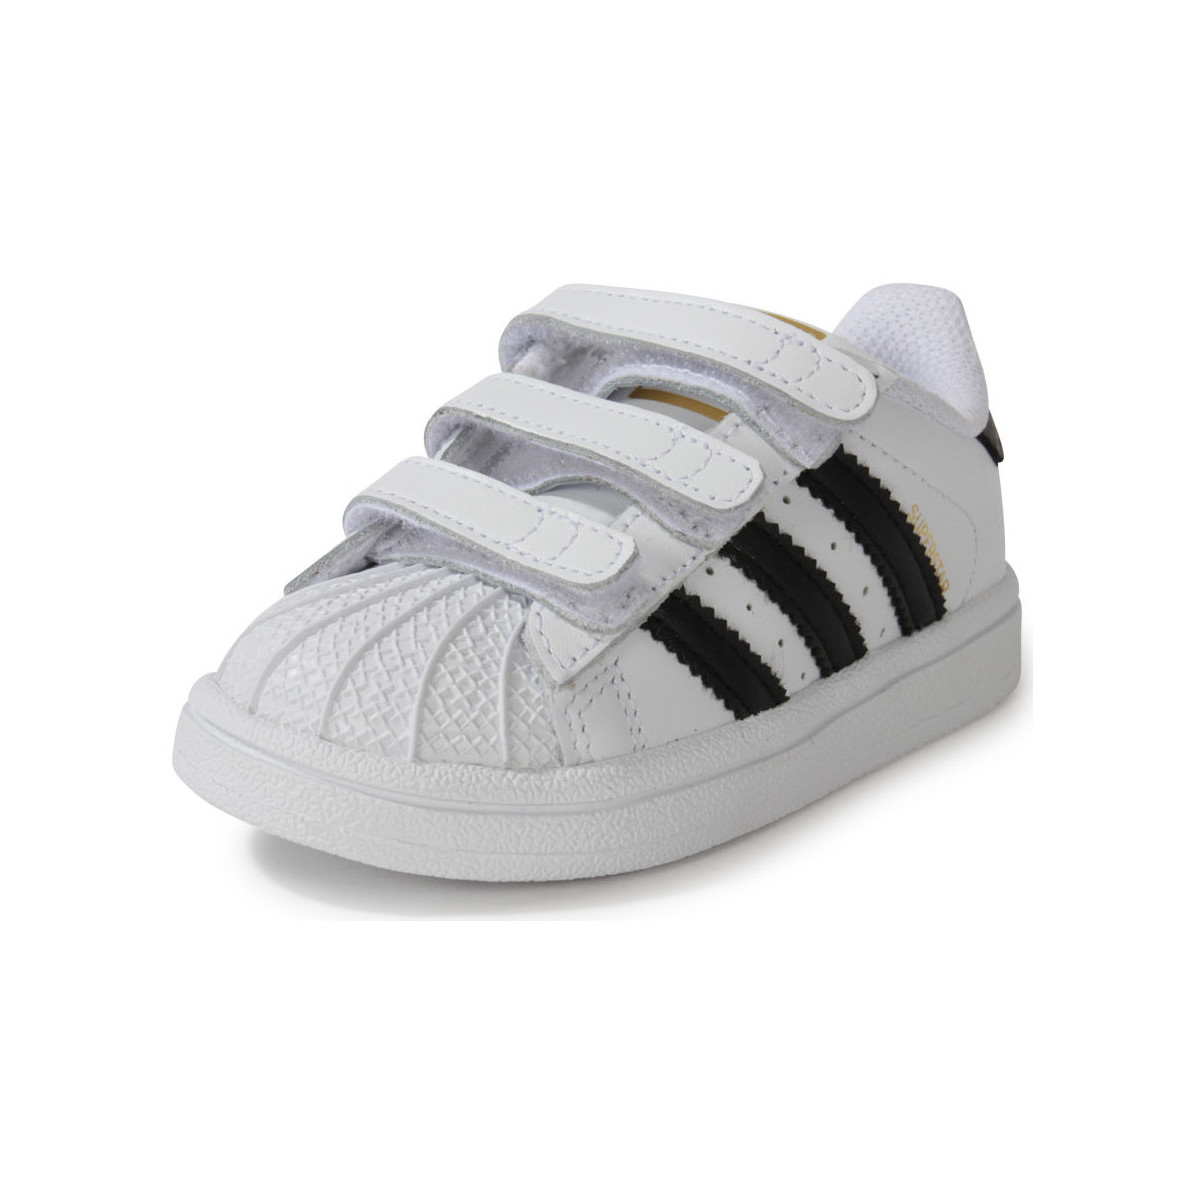 adidas Originals Superstar FoundationBébé Noir/Blanc